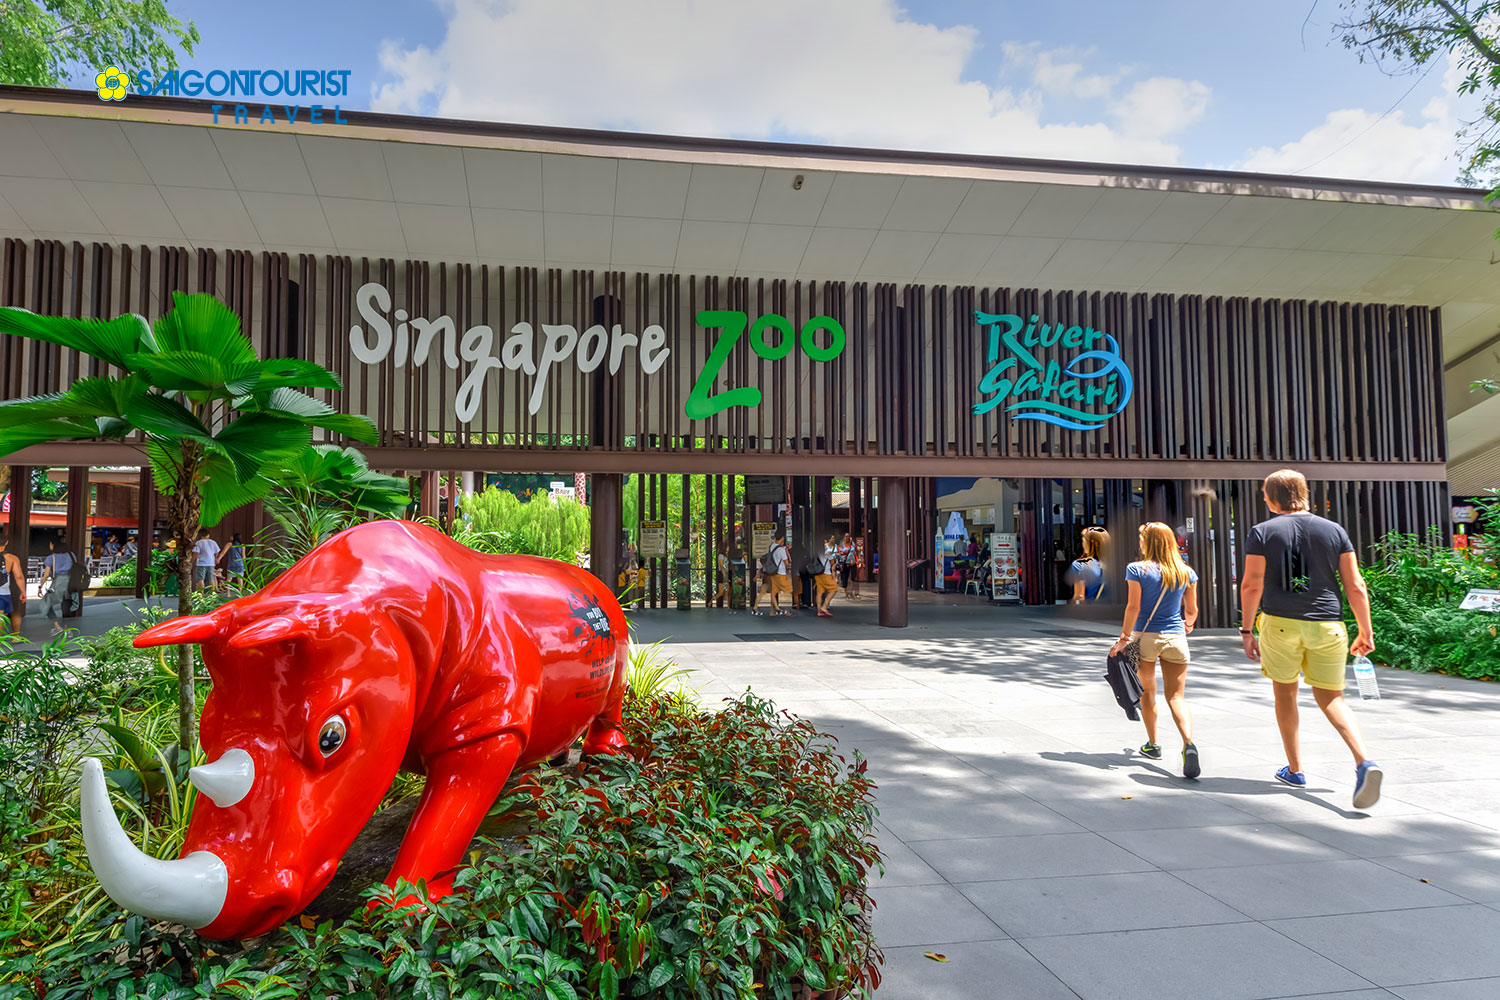 Du lịch Singapore [Gardens By The Bay - Wings Of Time - Marina Barrage - Singapore Zoo - River Safari - Phật Nha Tự]